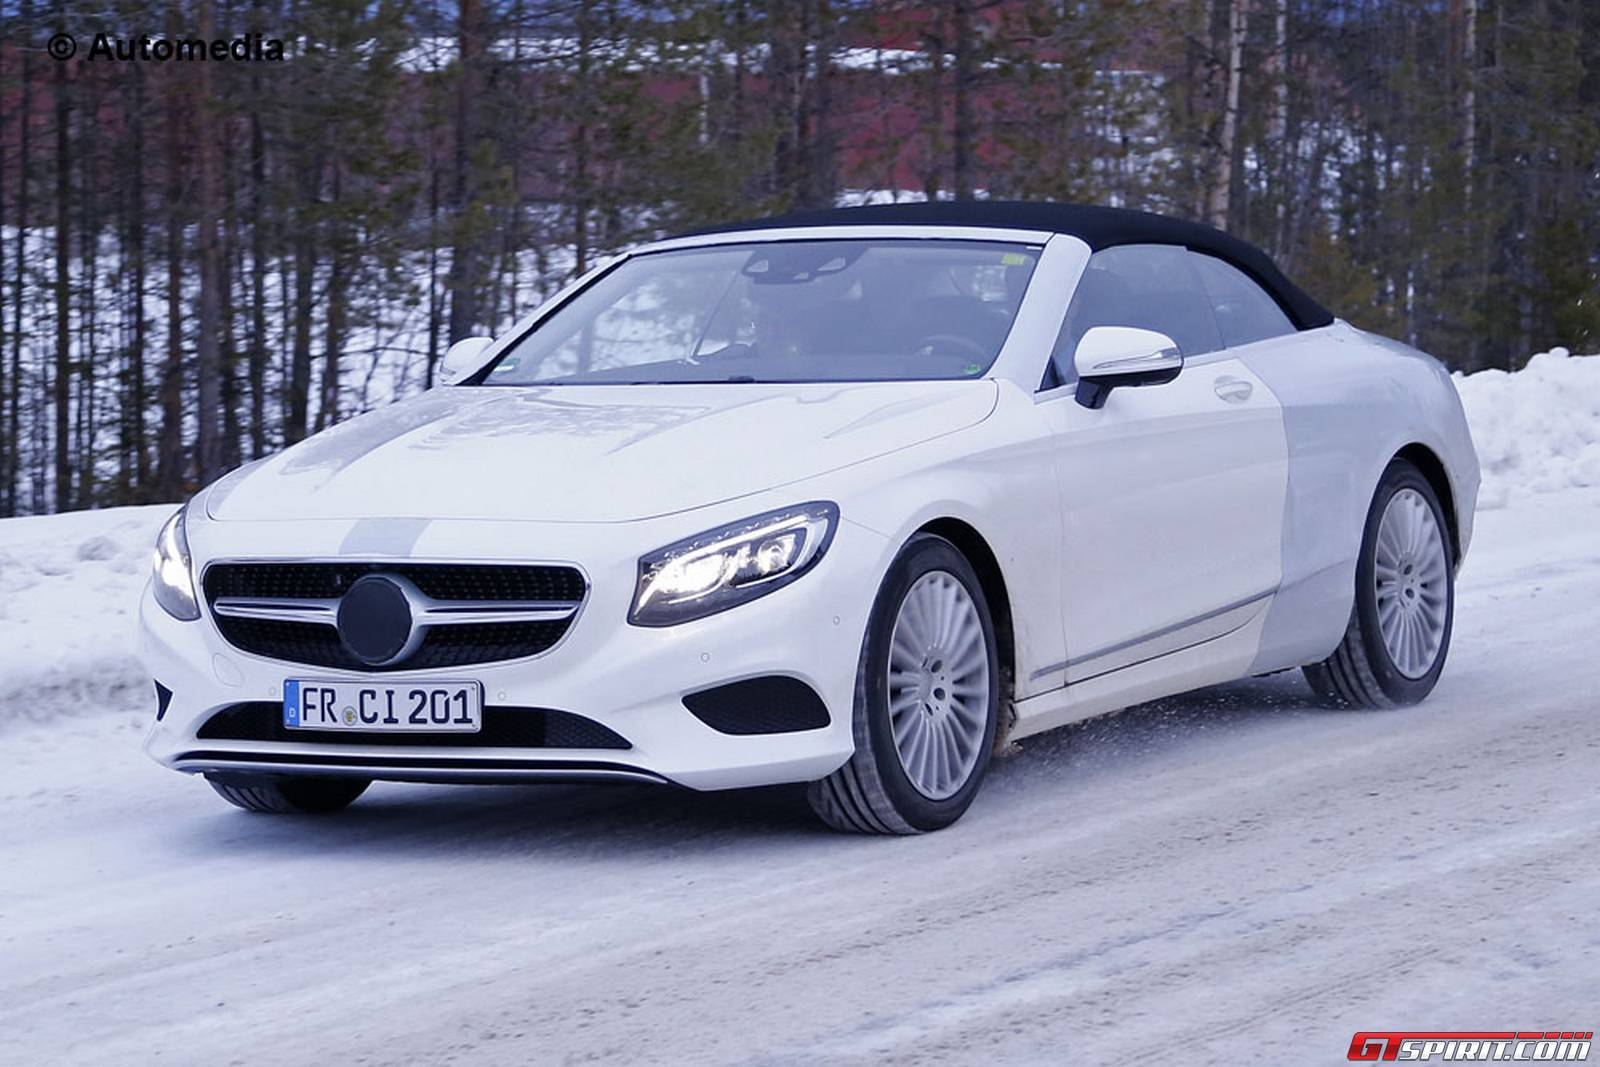 Mercedes benz s class cabriolet revealed in new spy shots for New mercedes benz s class 2015